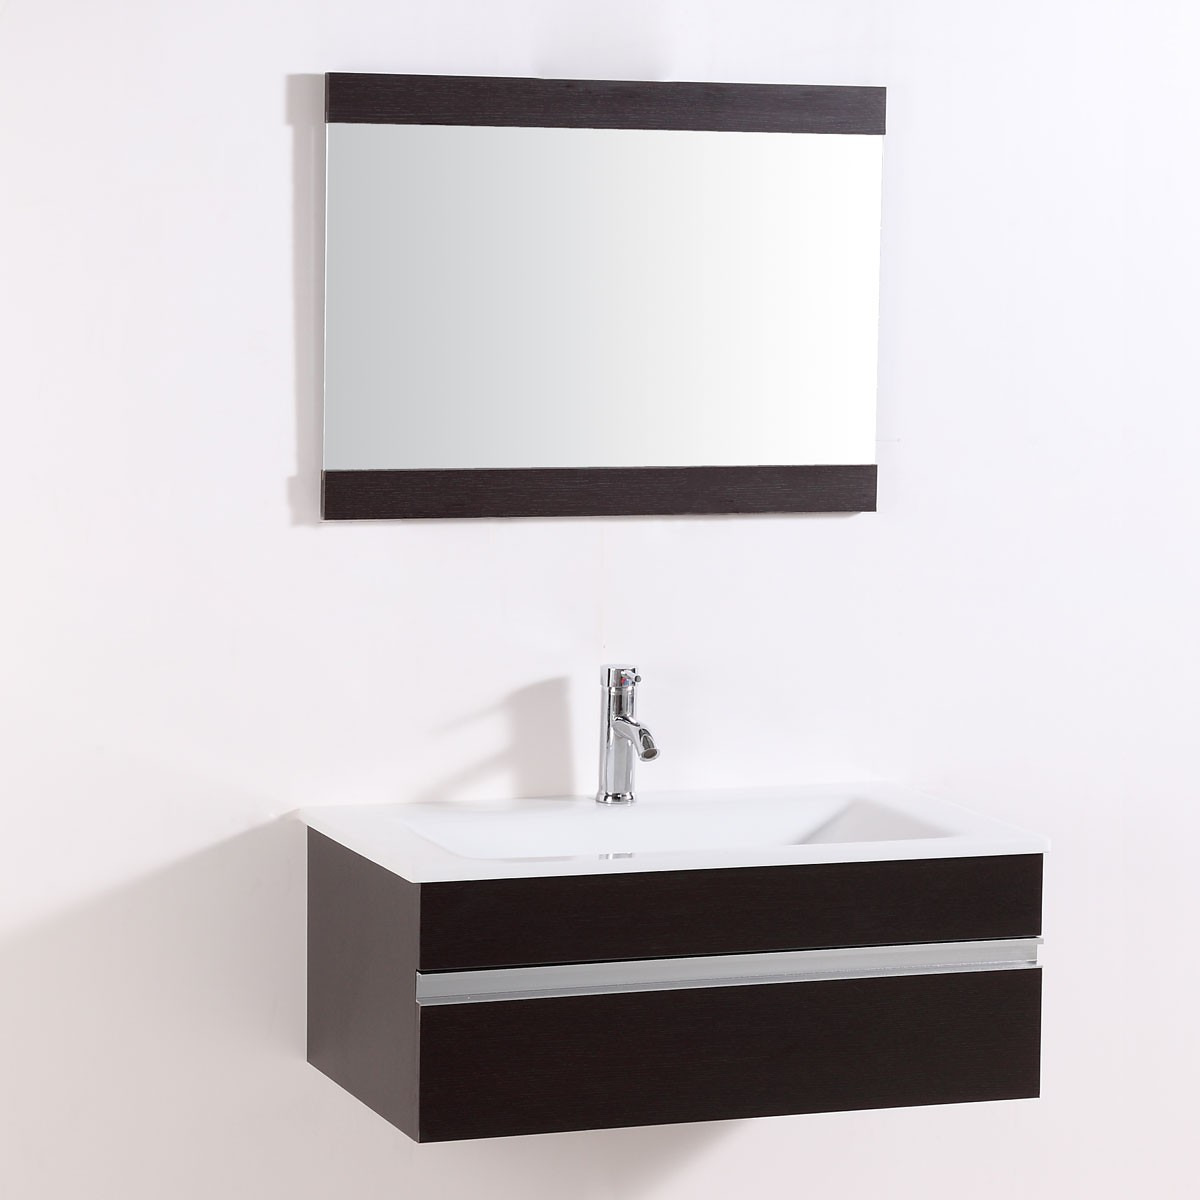 32 In. Wall Mount Bathroom Vanity Set with Single Sink and Mirror ...